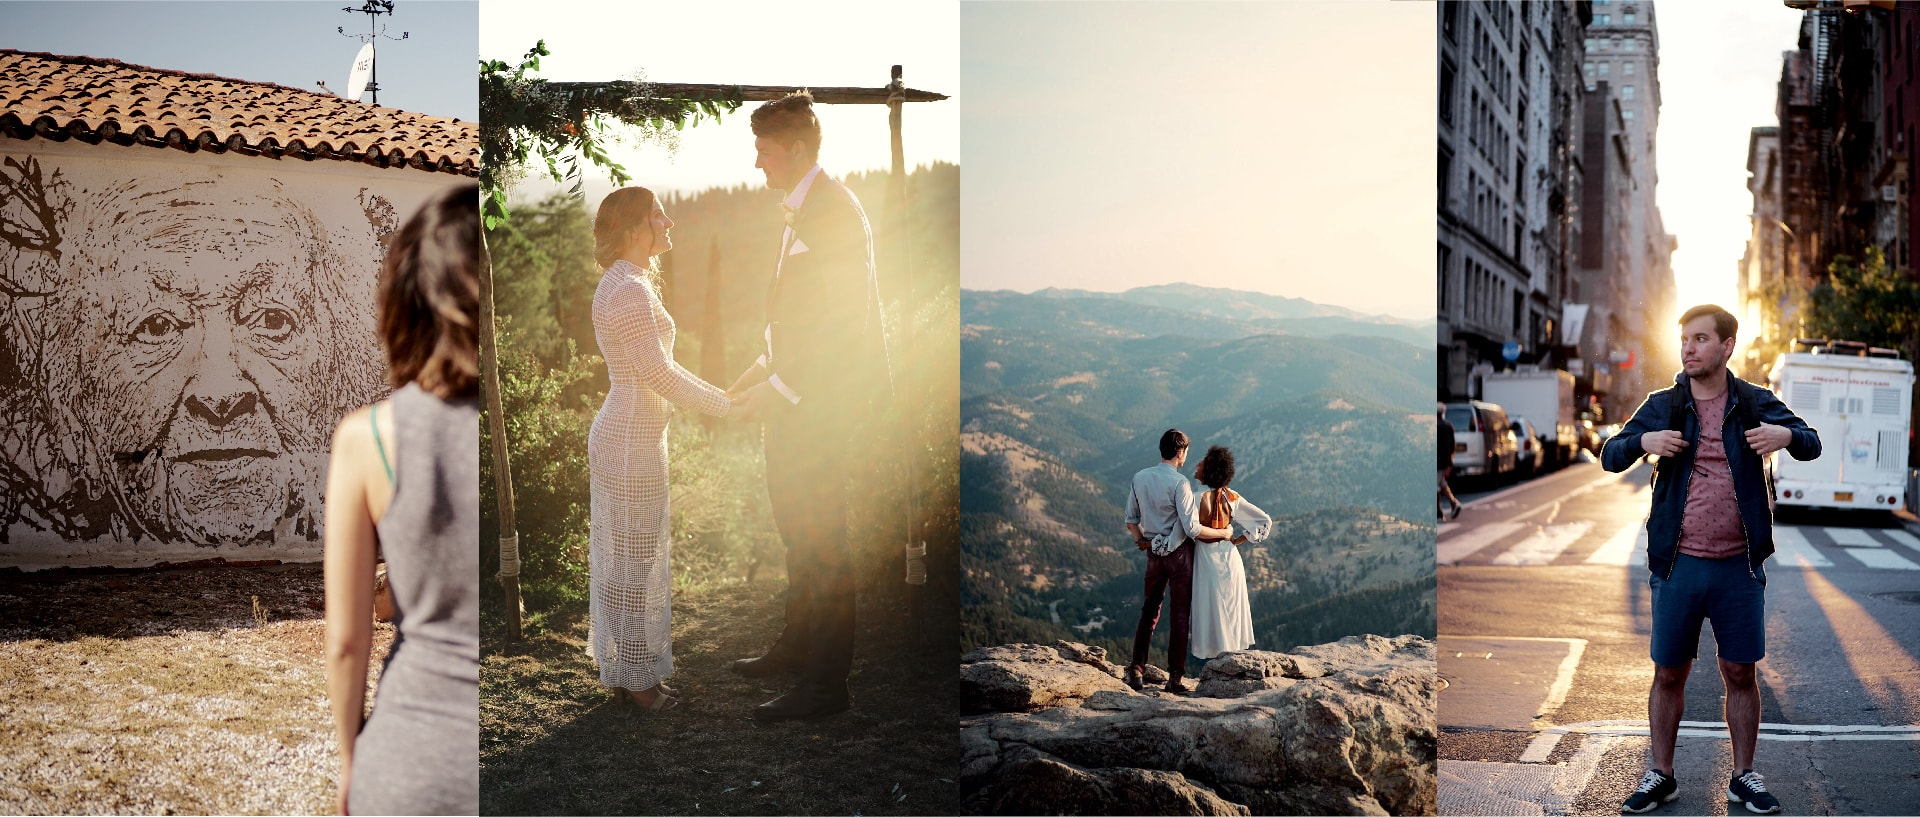 wedding videographer portugal